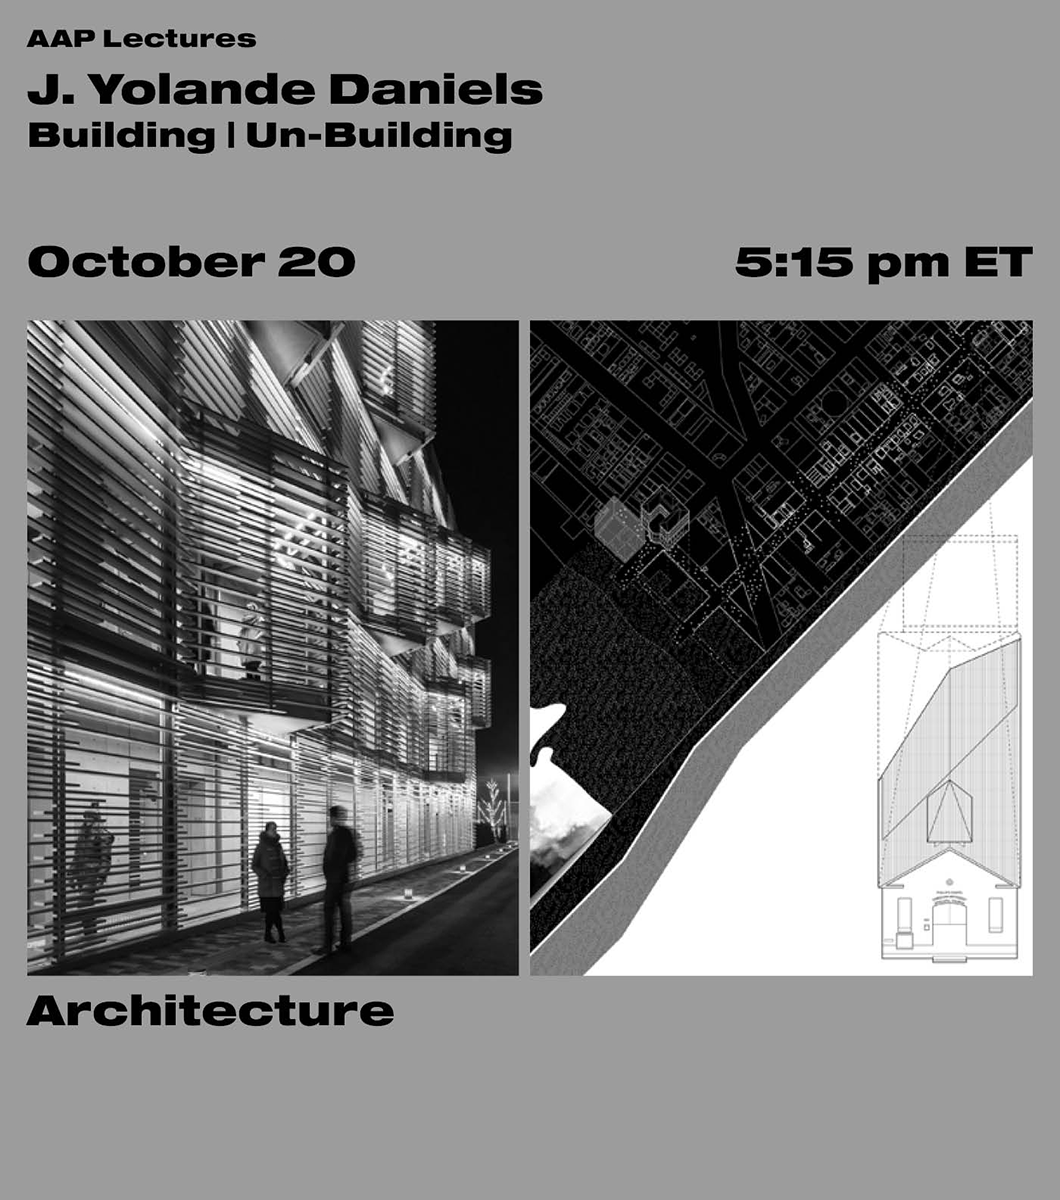 Black text on a grey background with a building on the left side and a diagram on the right.